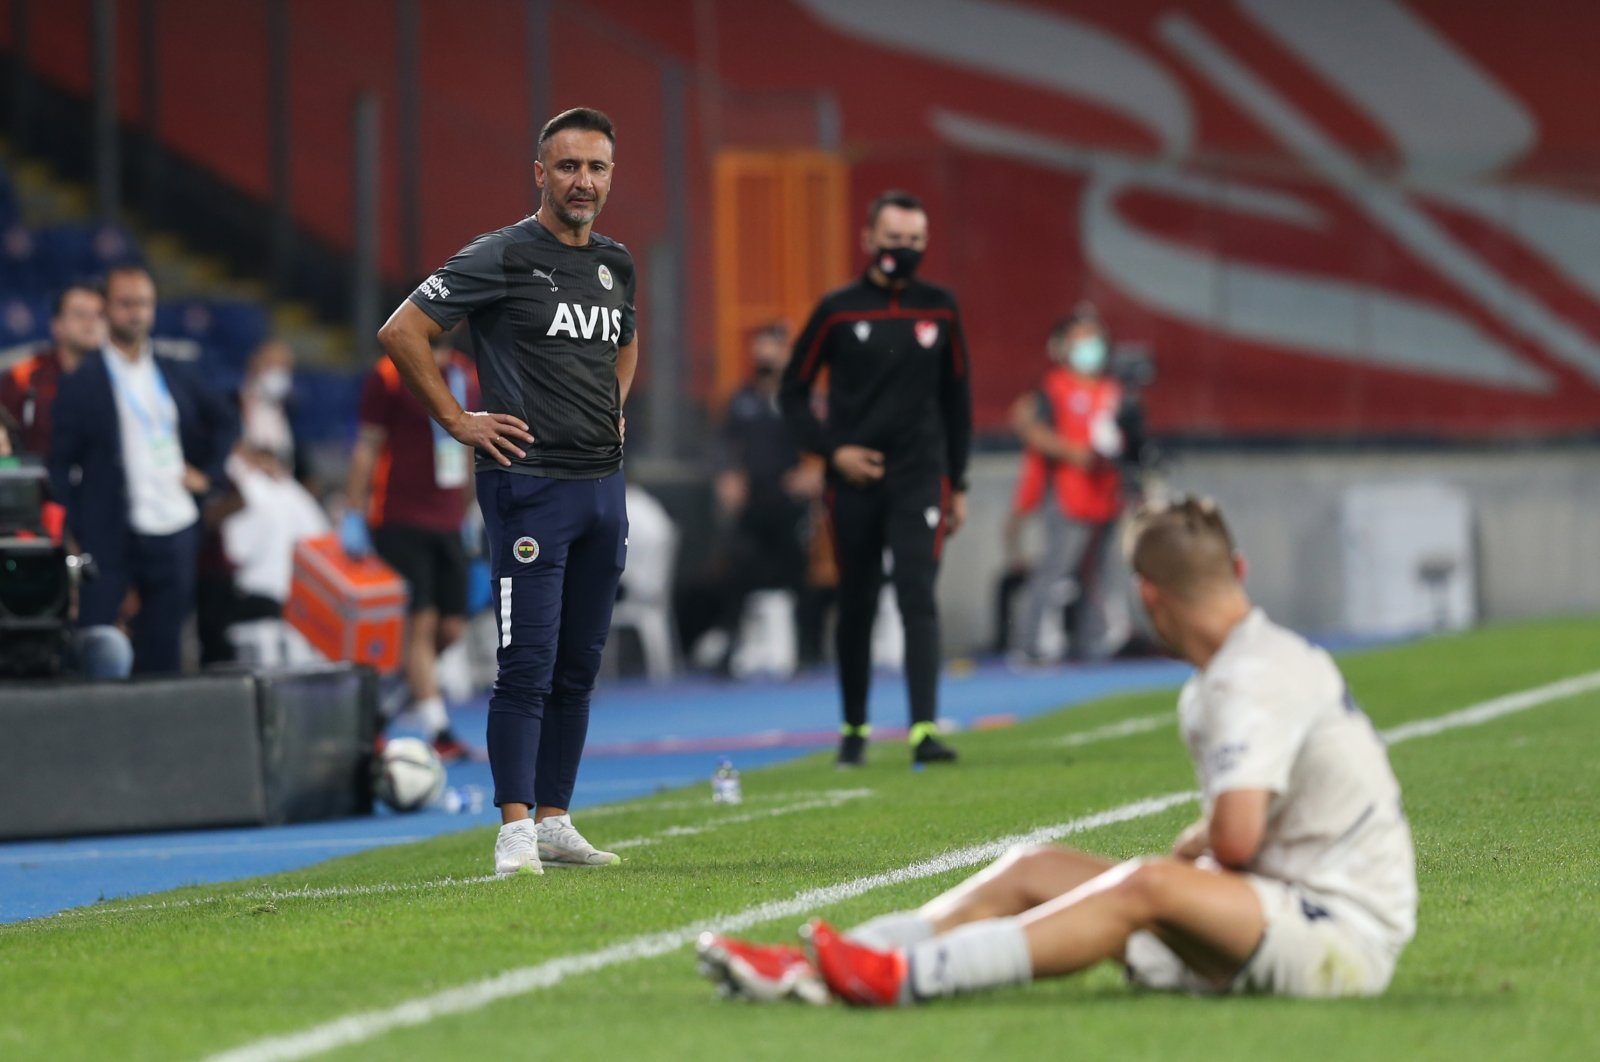 Fenerbahçe coach Vitor Pereira looks at a player from the sidelines during a Süper Lig match against Başakşehir, Istanbul, Turkey, Sept. 20, 2021. (AA Photo)